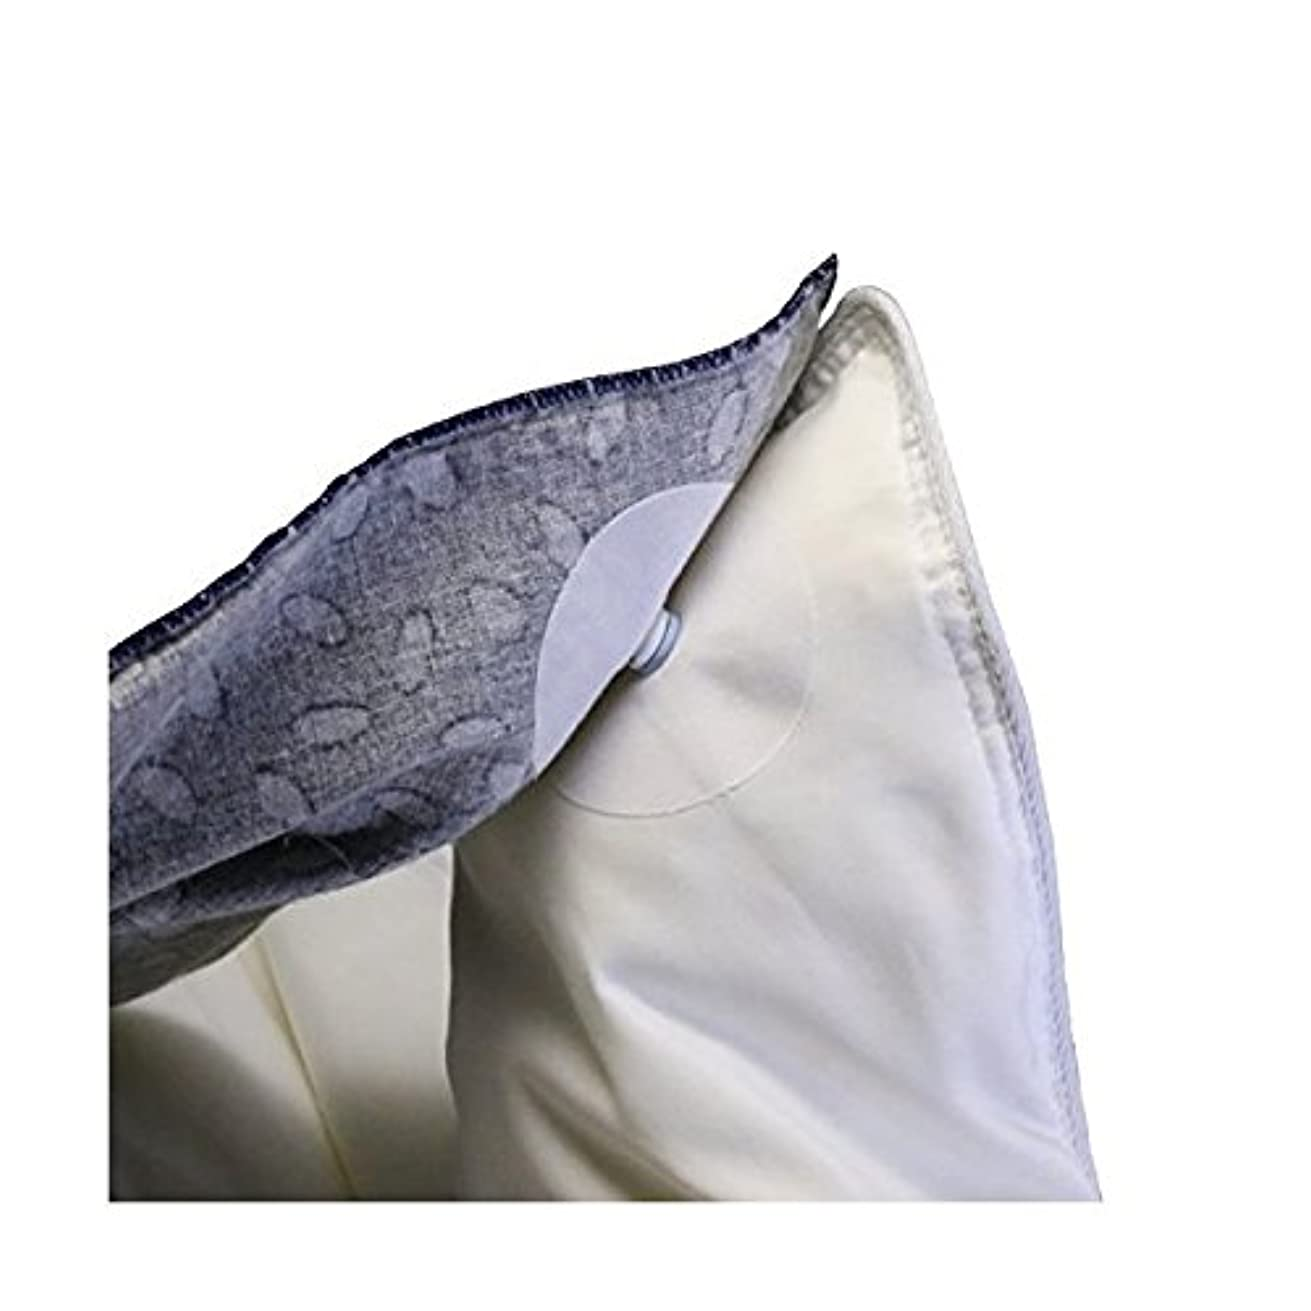 Corner Keepers Duvet Cover Snaps - Holds Your Comforter in Place All Night, No More Shifting, Easy Iron-On Install, Strong Simple Solution, Less Bulky Than Clips